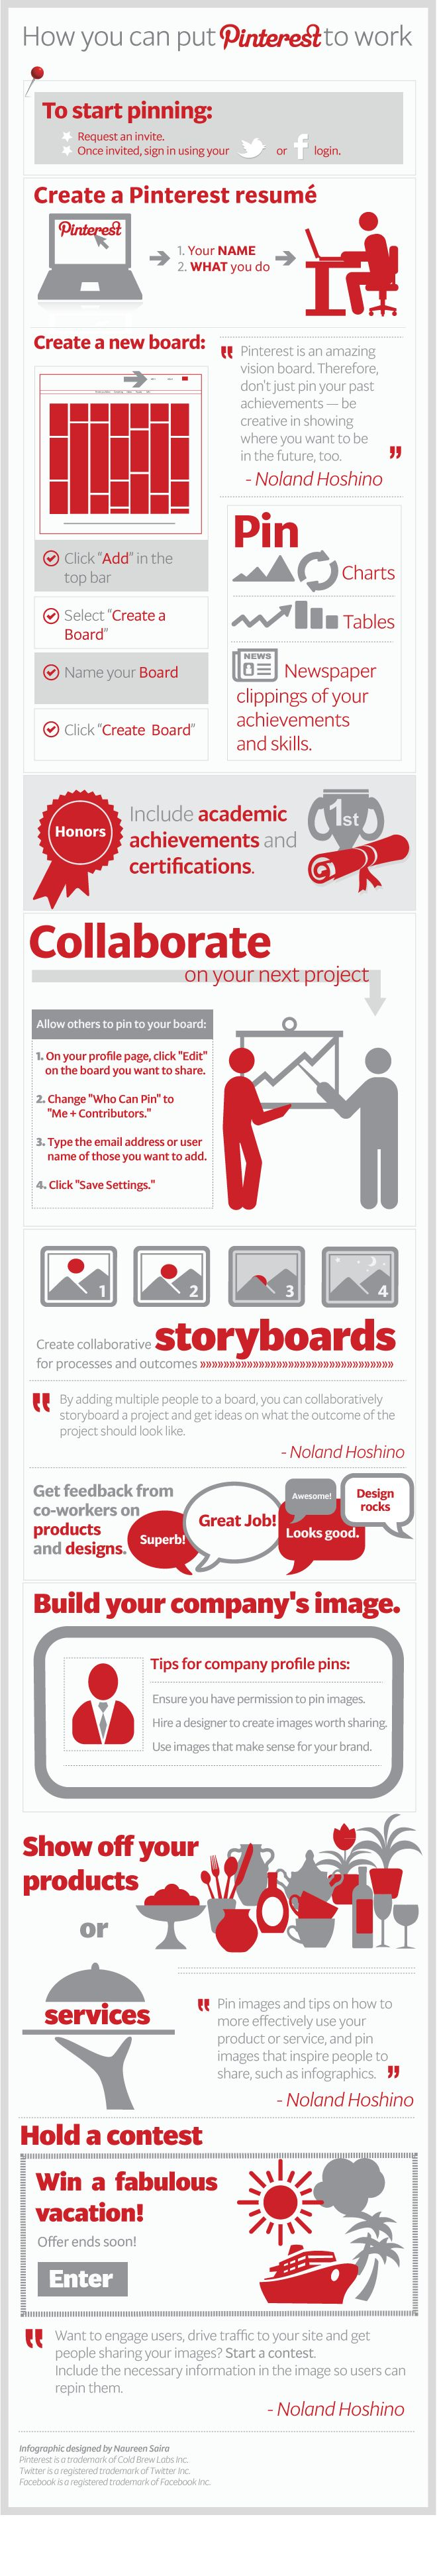 Pinterest Infographic: How you can put Pinterest to work!!